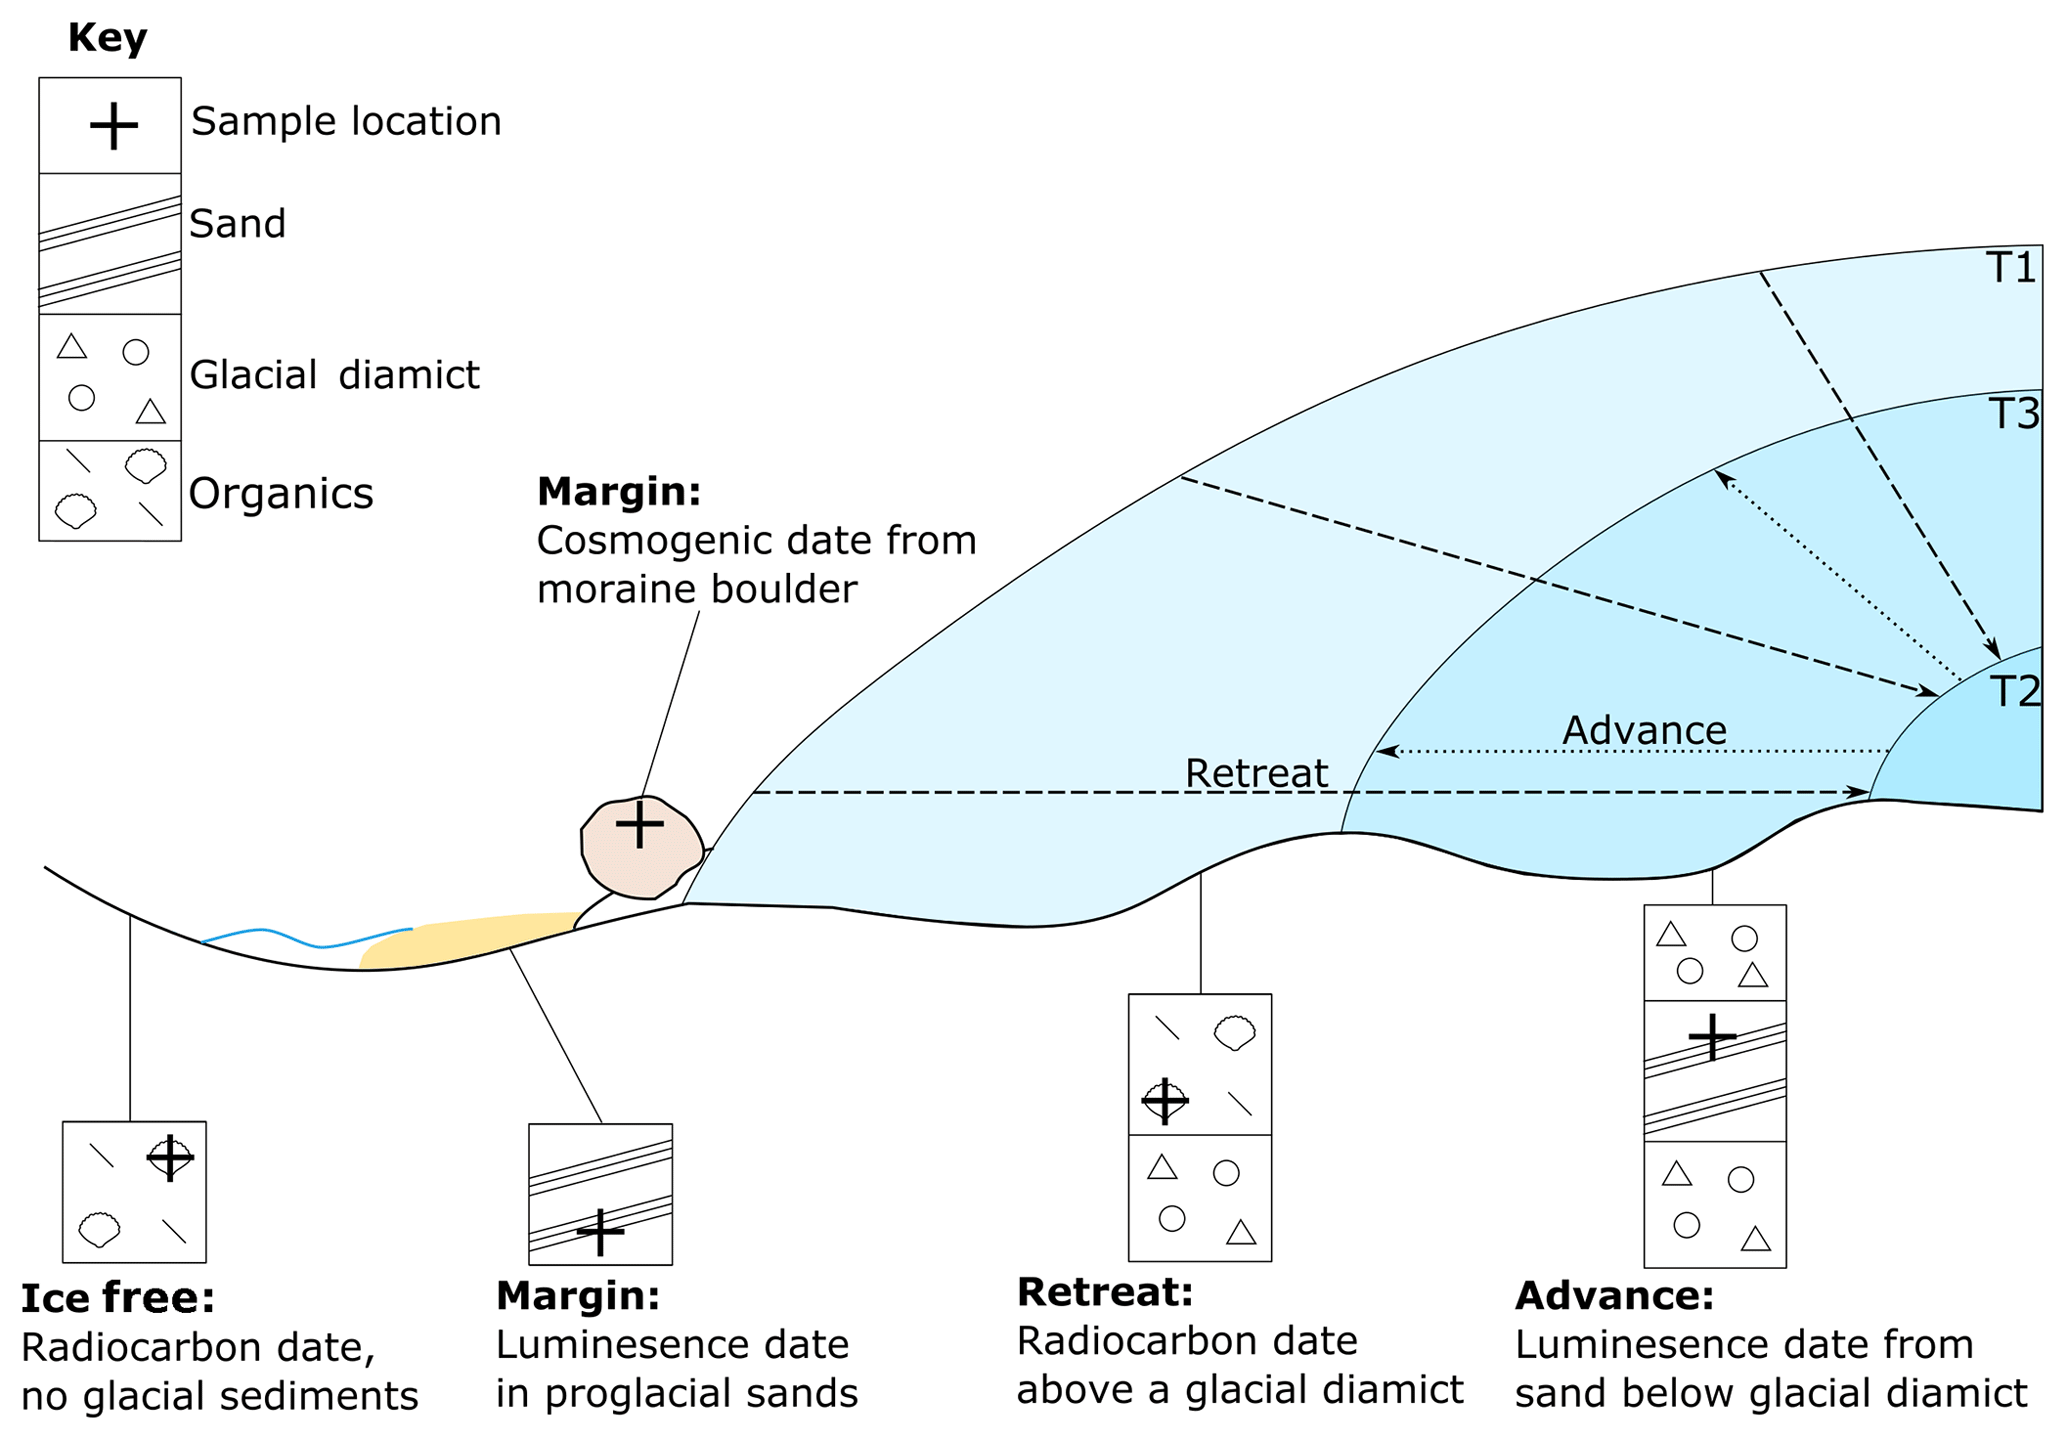 Dating of marine sediments by an incomplete mixing model